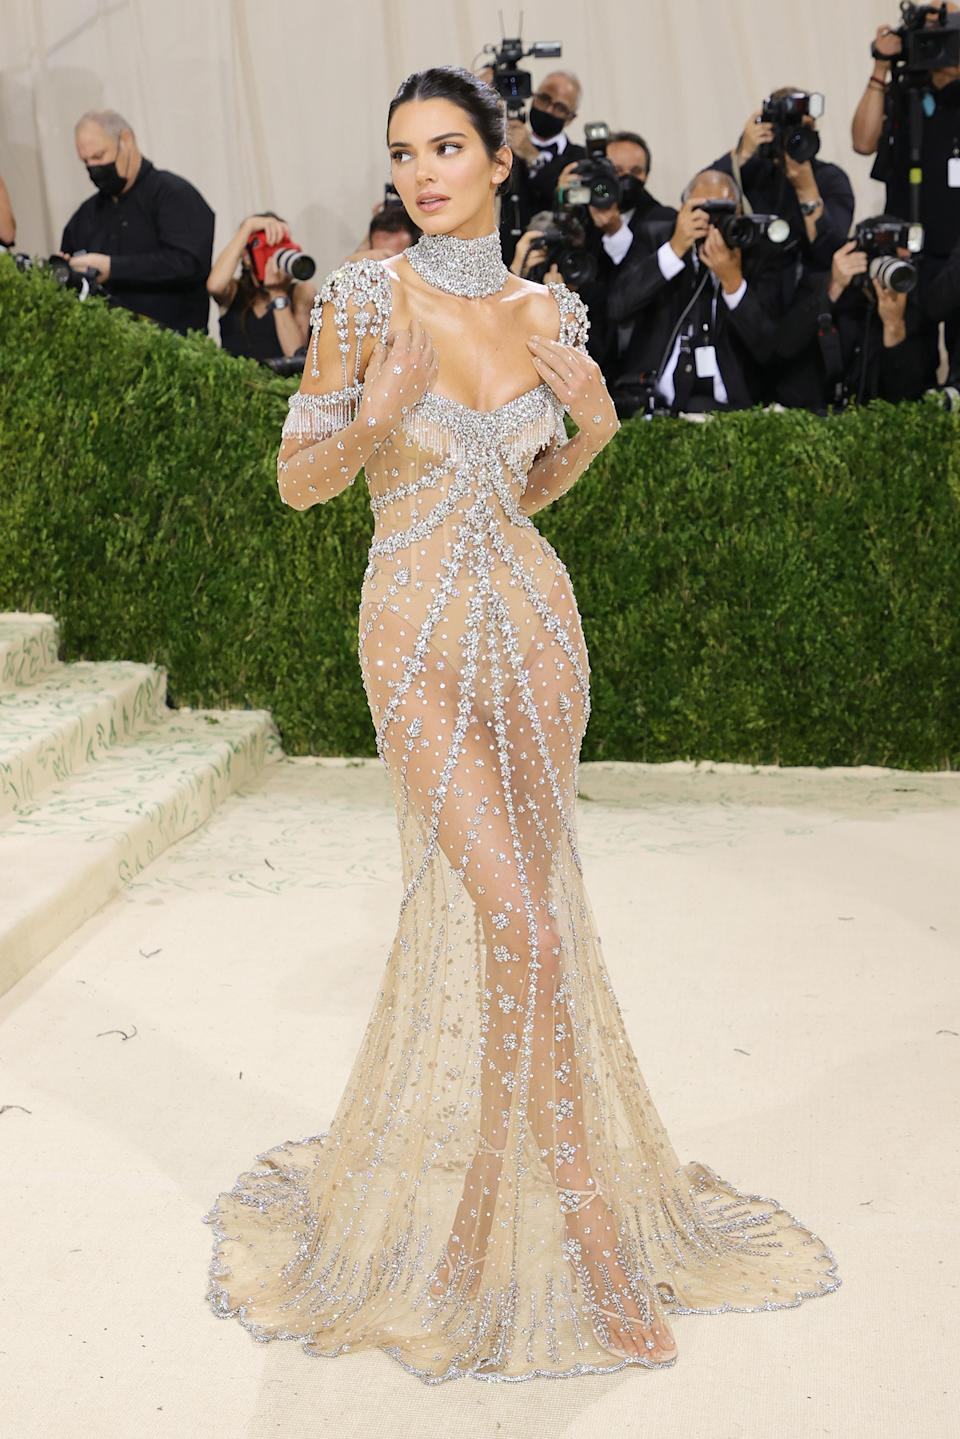 Kendall Jenner 2021 Met Gala  (Mike Coppola / Getty Images)